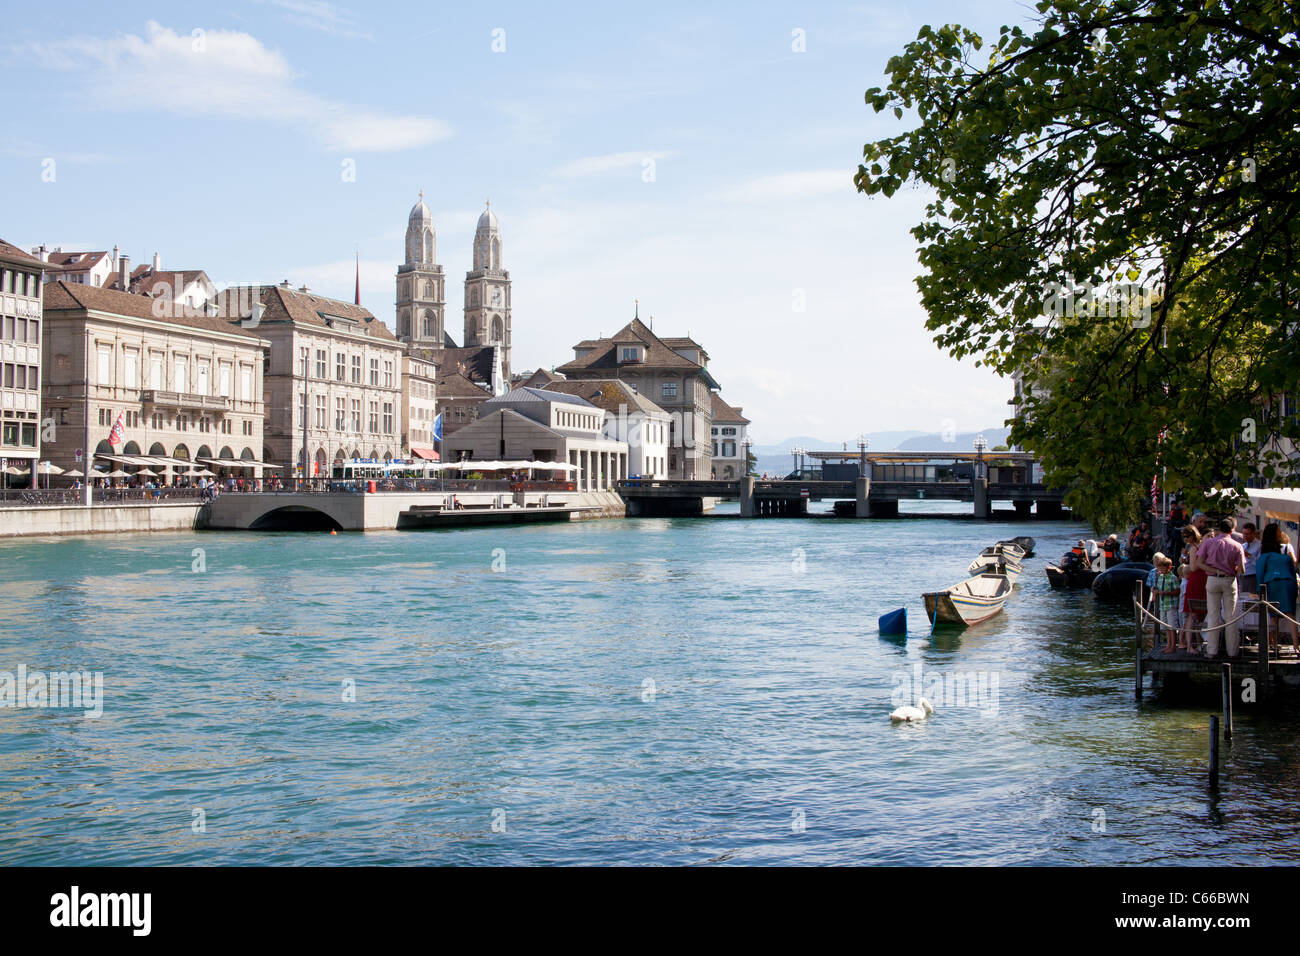 Limmat River, old town, houses, Zürich, Switzerland - Stock Image